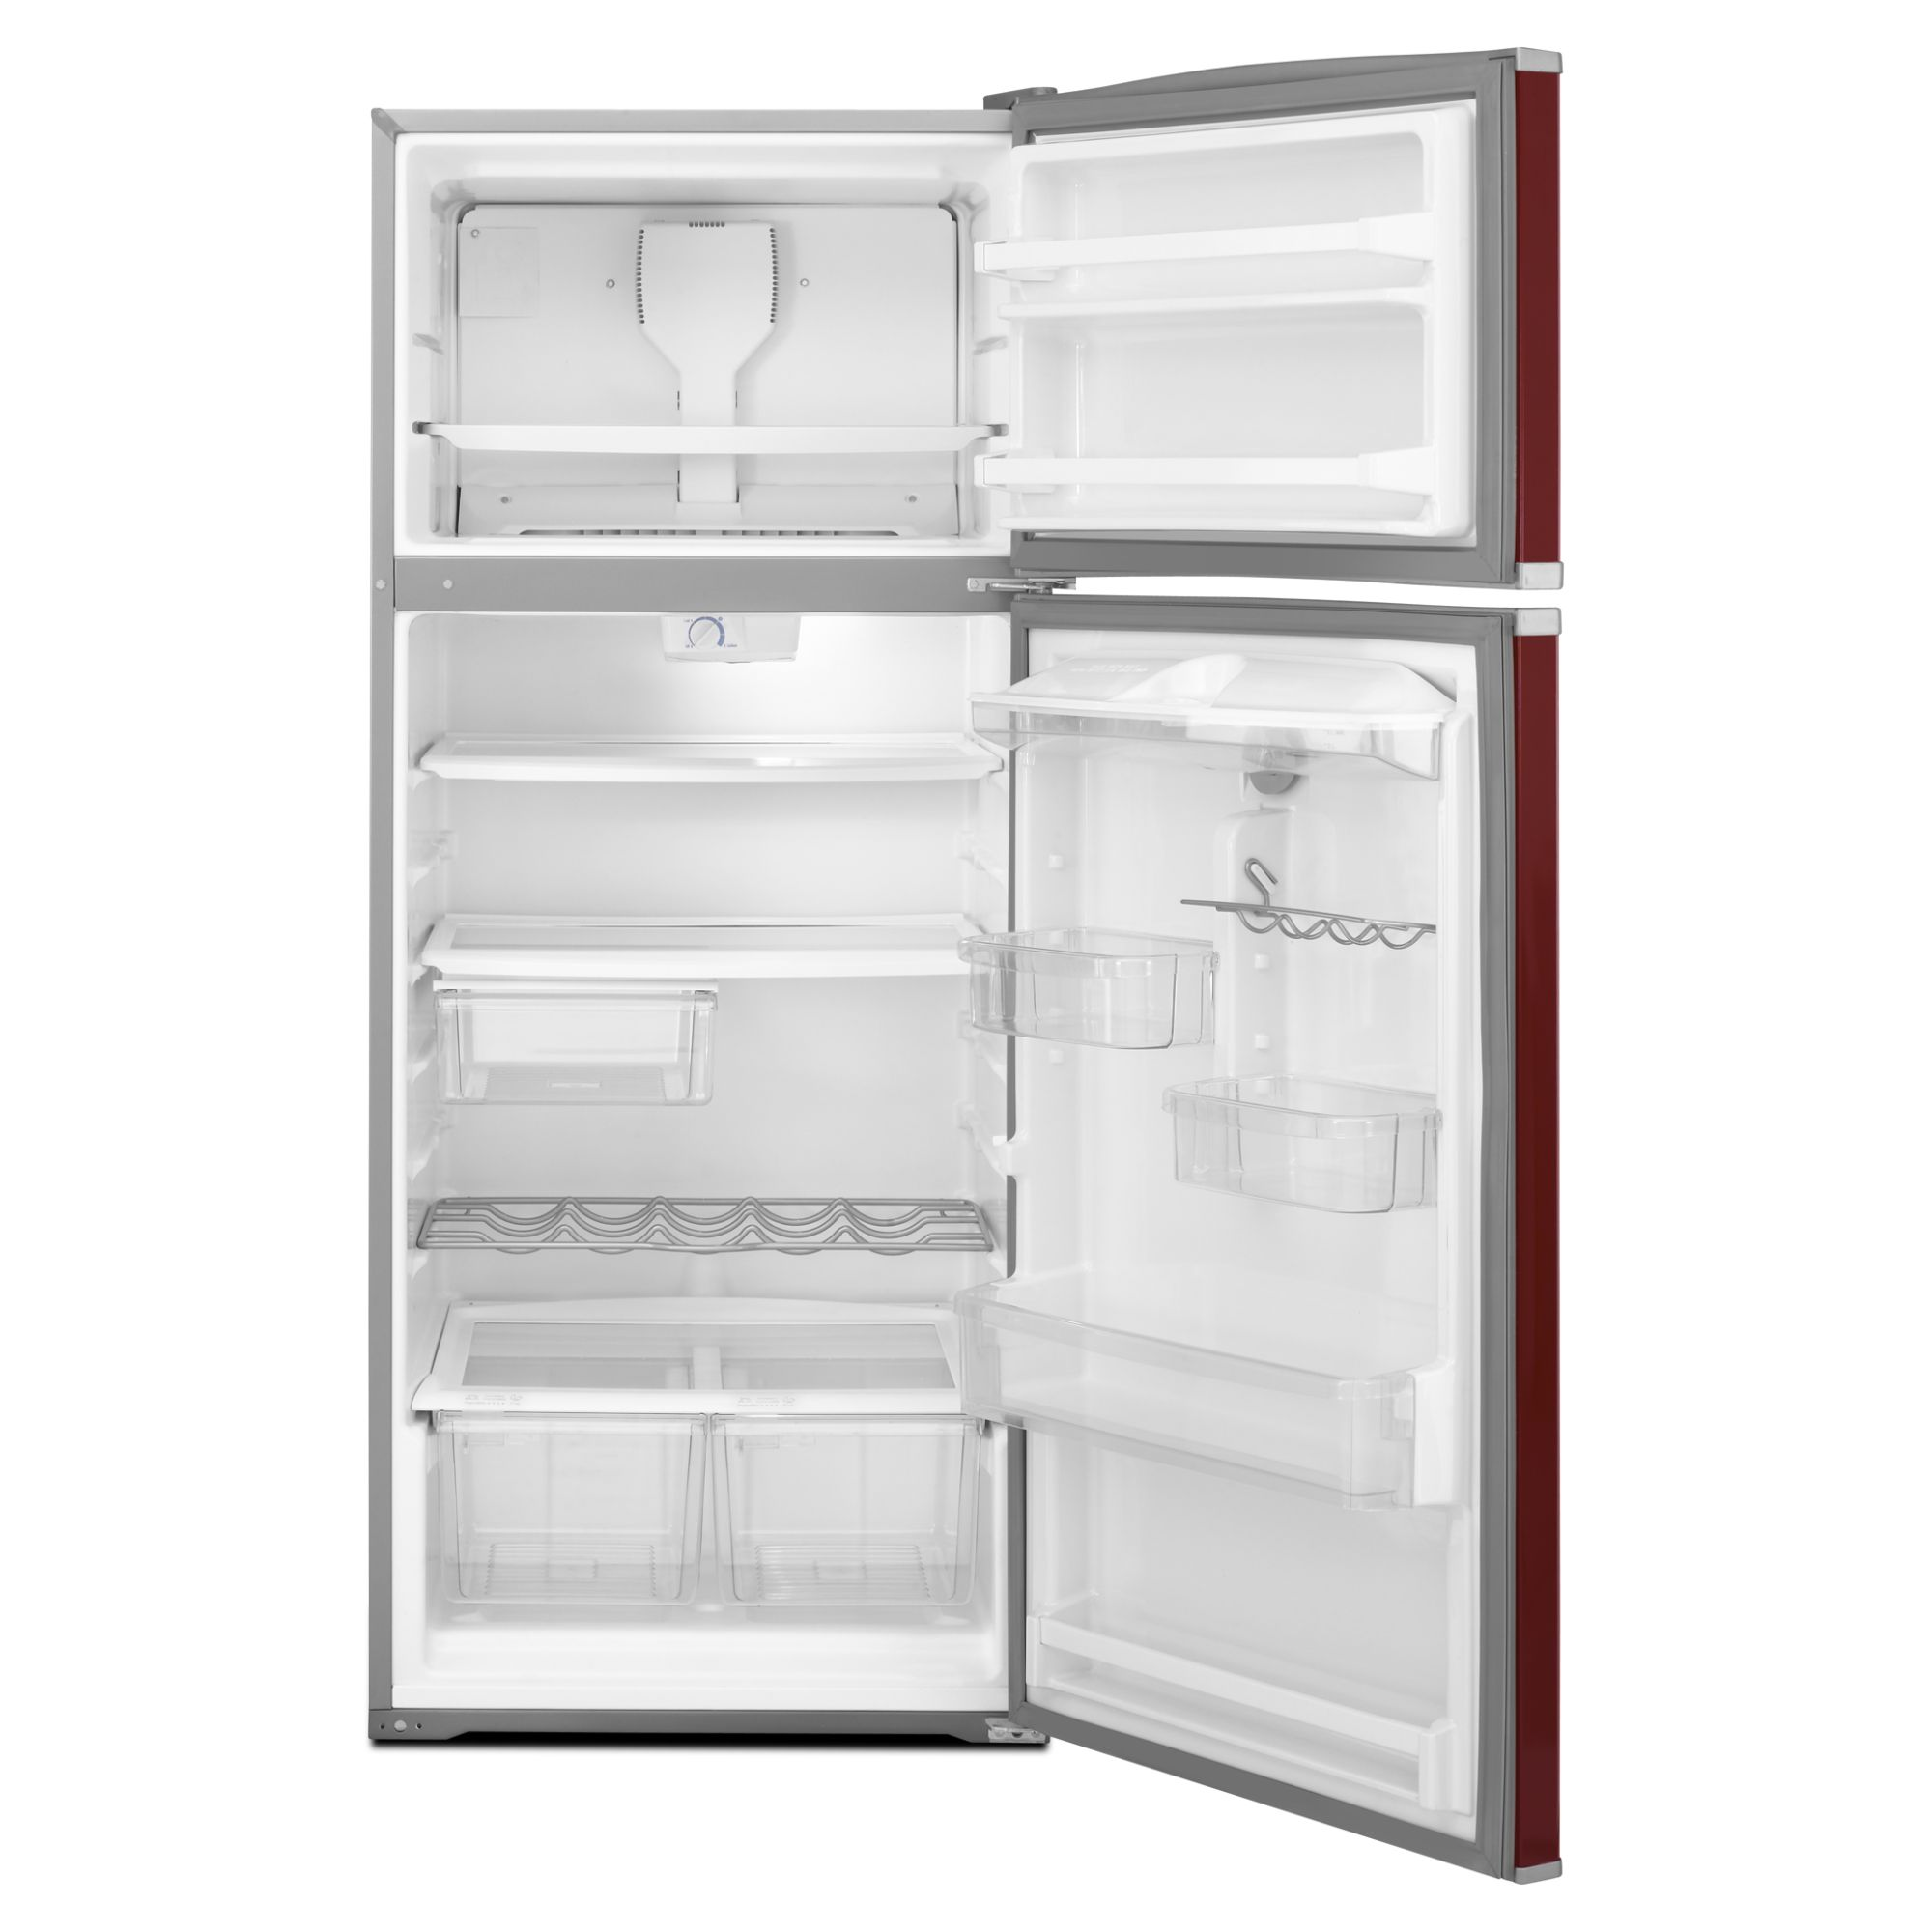 Amana 17.6 cu. ft. Top-Freezer Refrigerator w/ Exterior Beverage Dispenser - Red